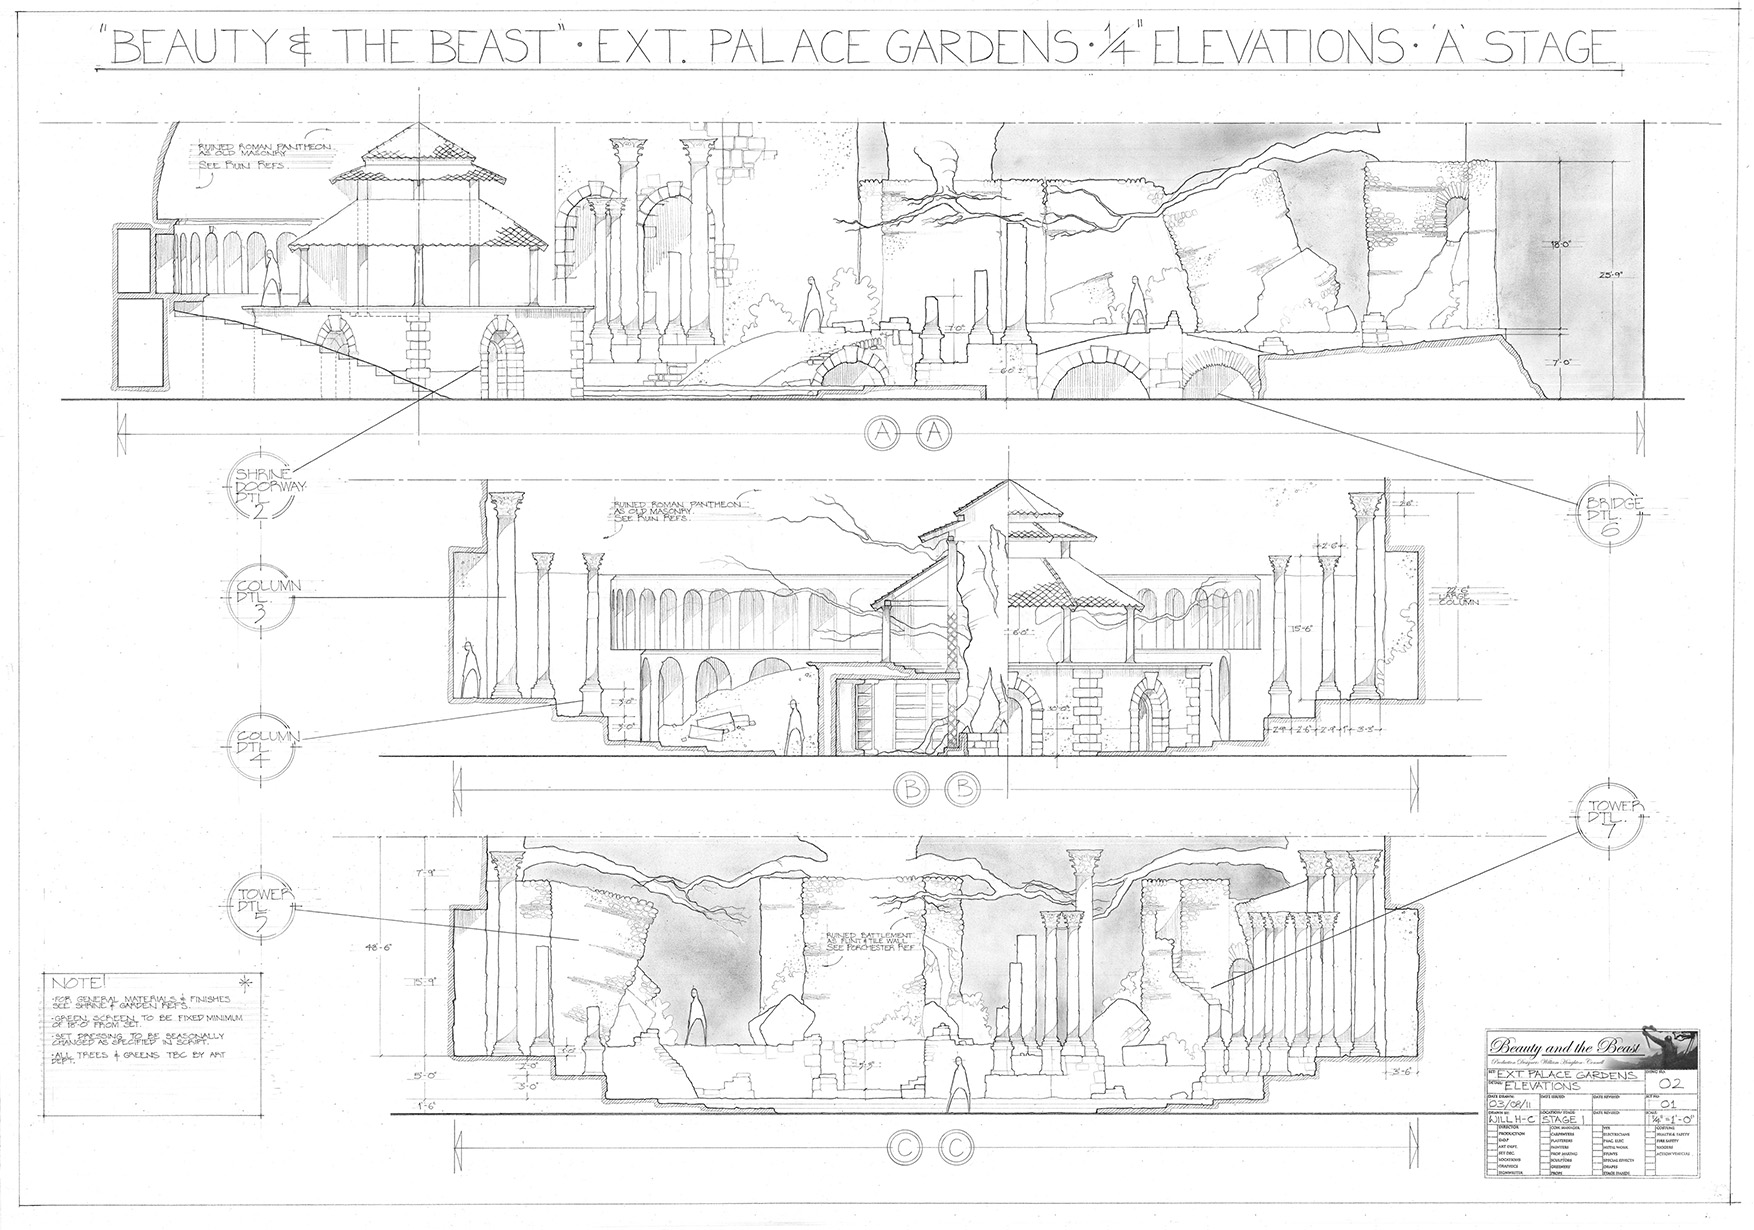 Will Houghton-Connell - Draughting B&B Elevations